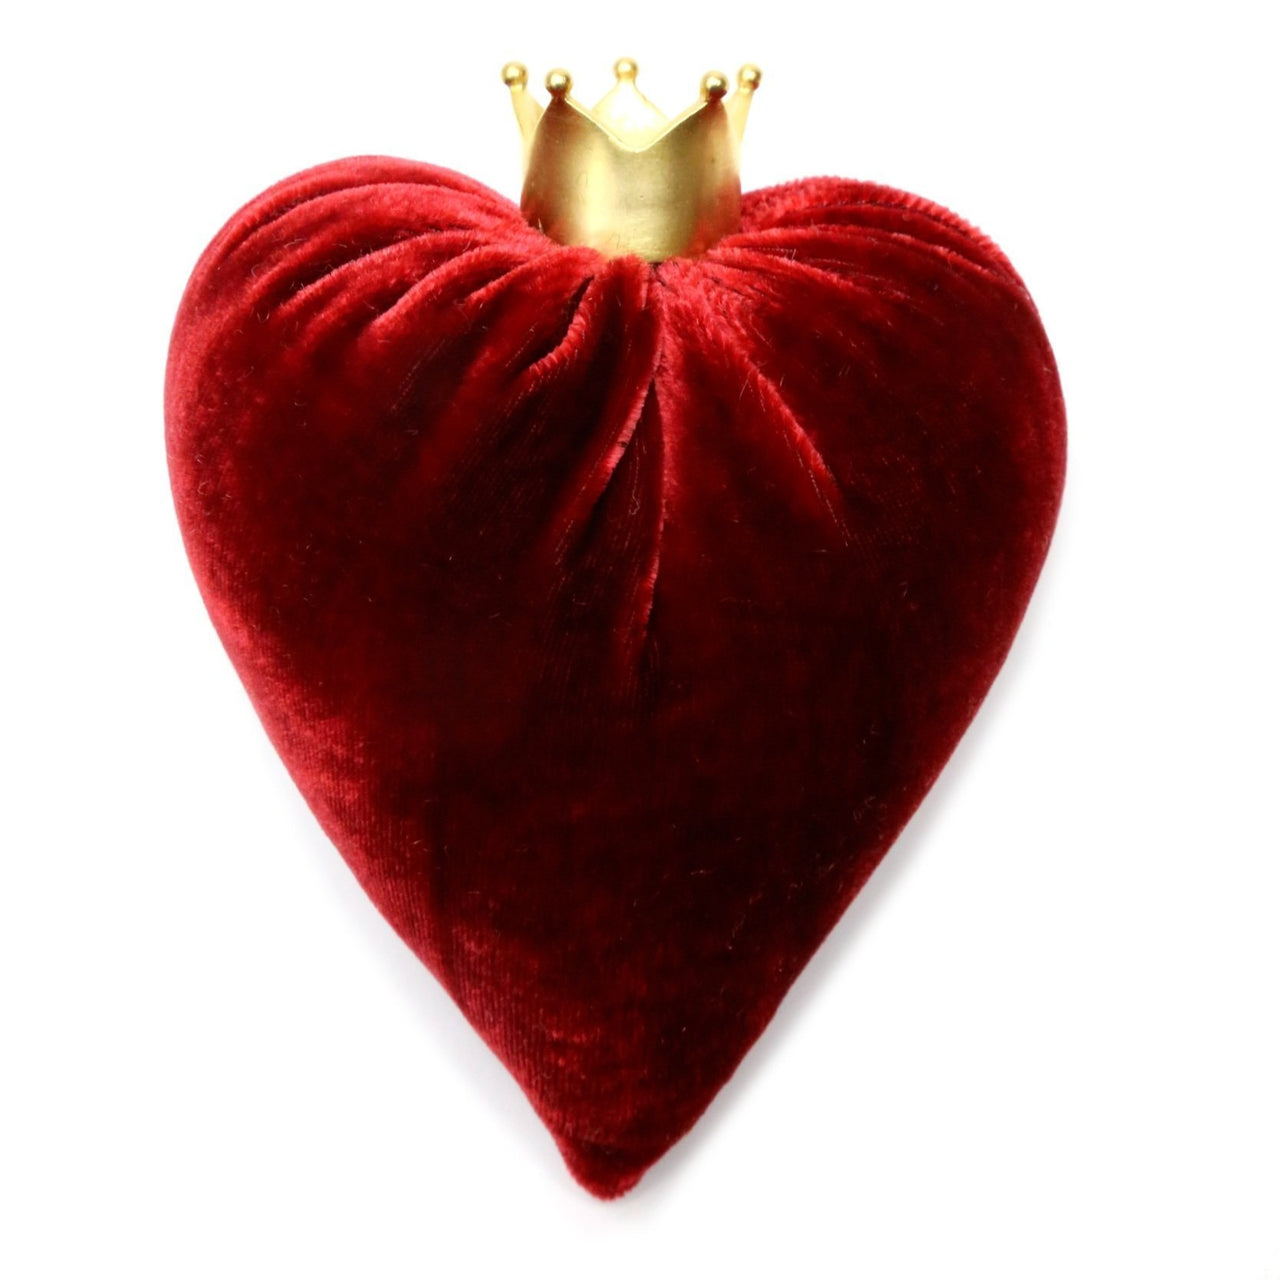 Medium Luxurious Silk Velvet Heart with 14k Gold Plate Crown - PoppyandPeaches.com - Hot Skwash